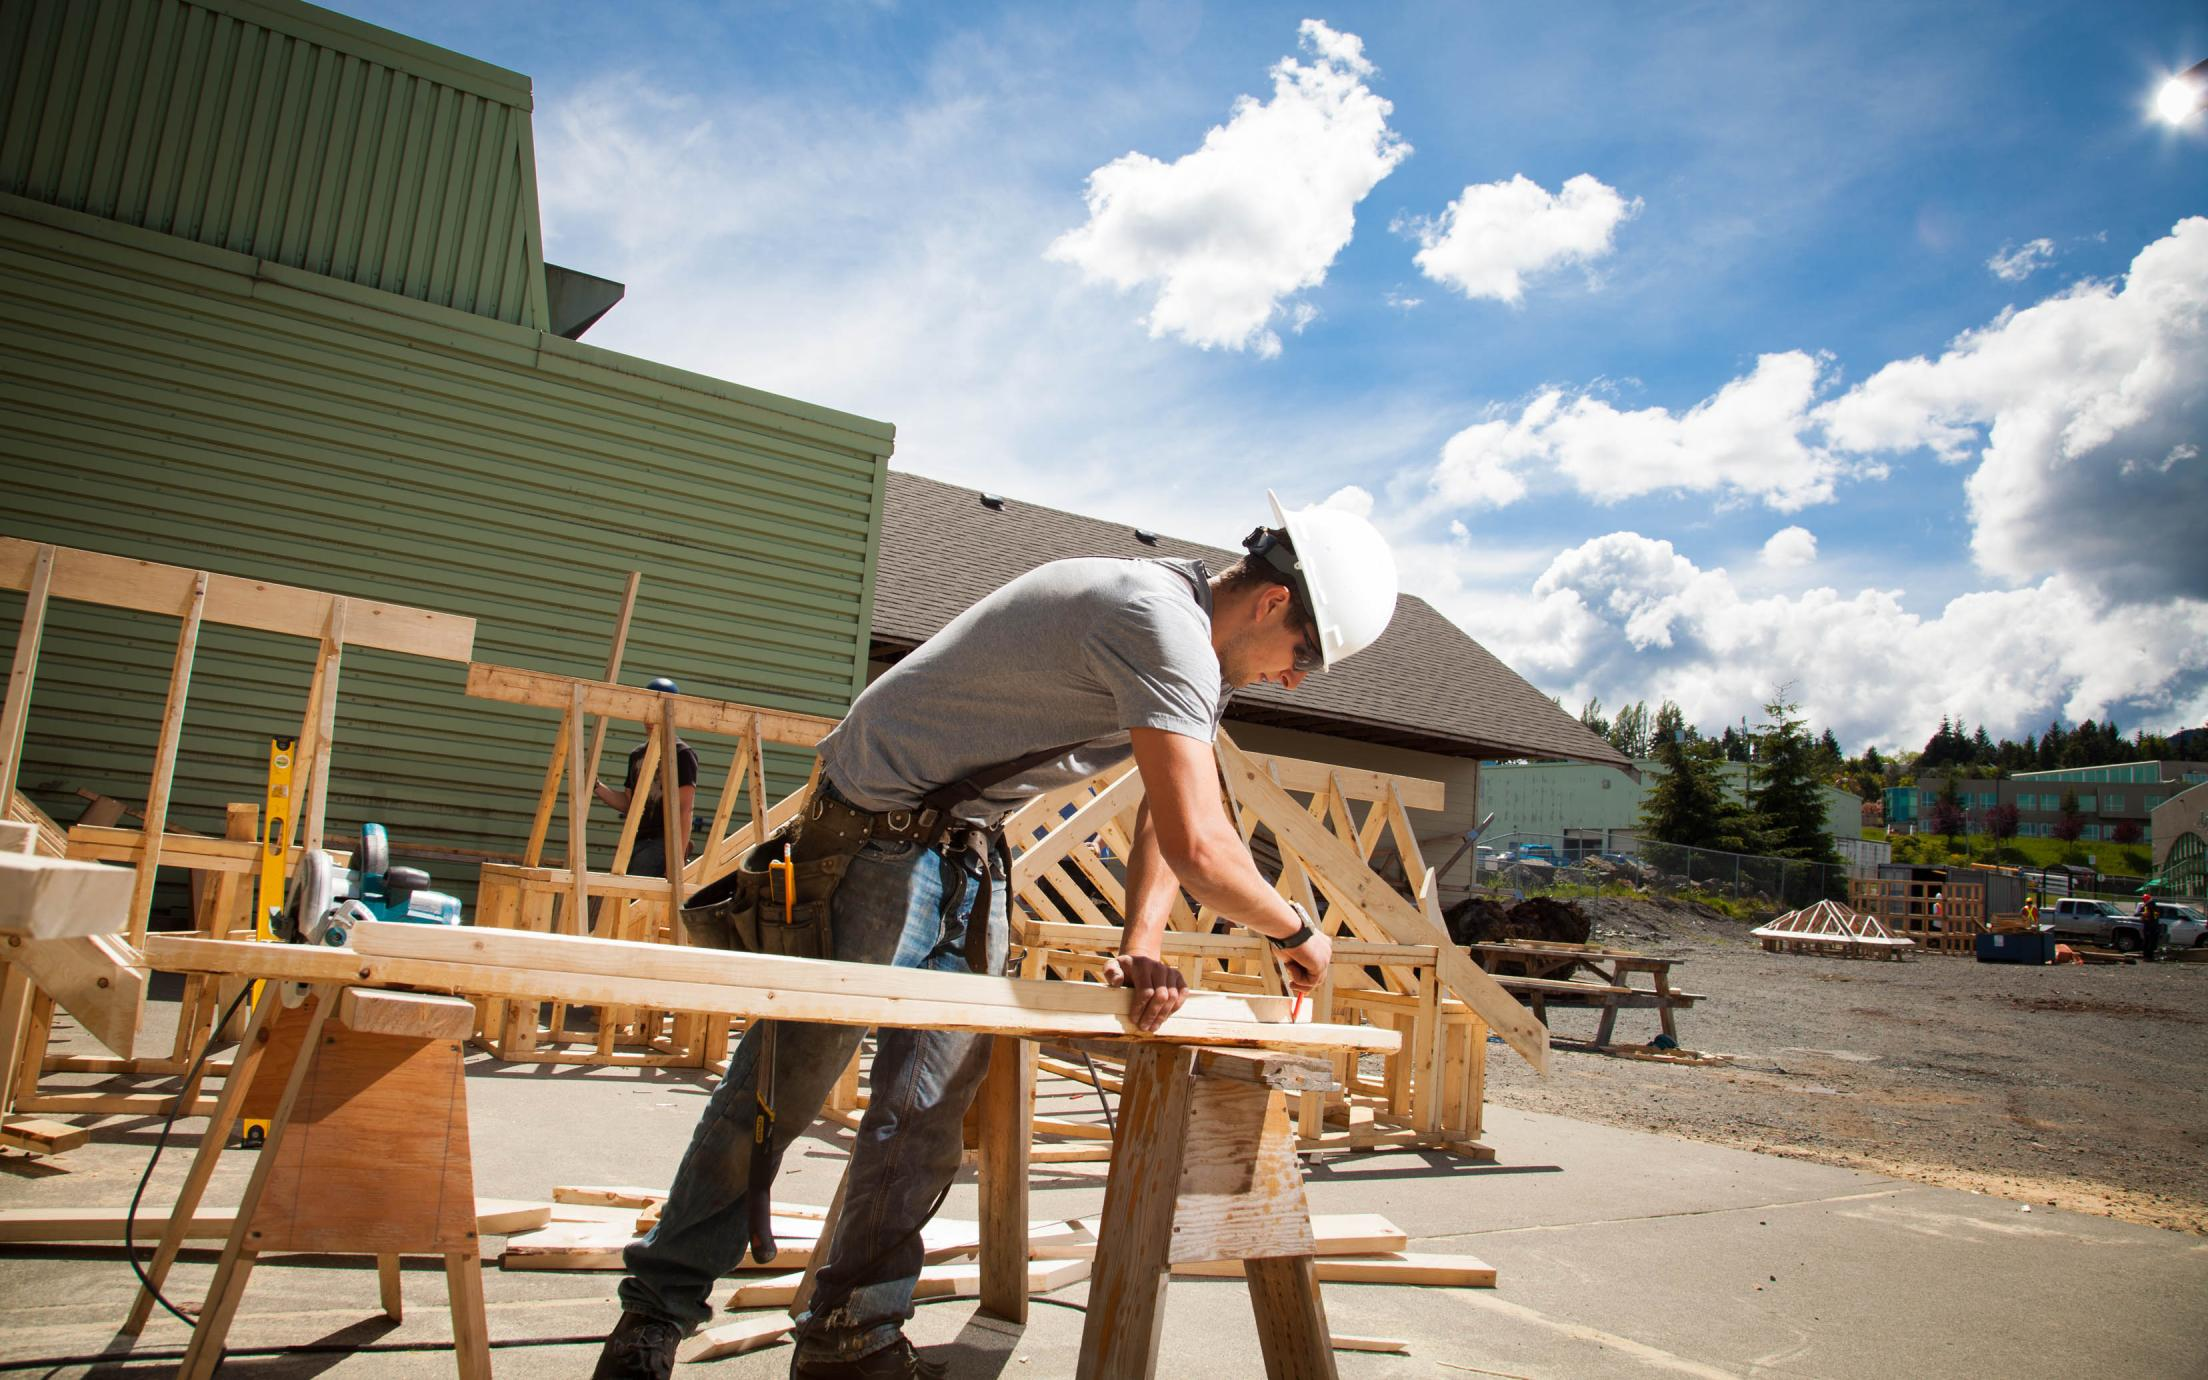 A Carpentry Apprenticeship student working on his wooden project